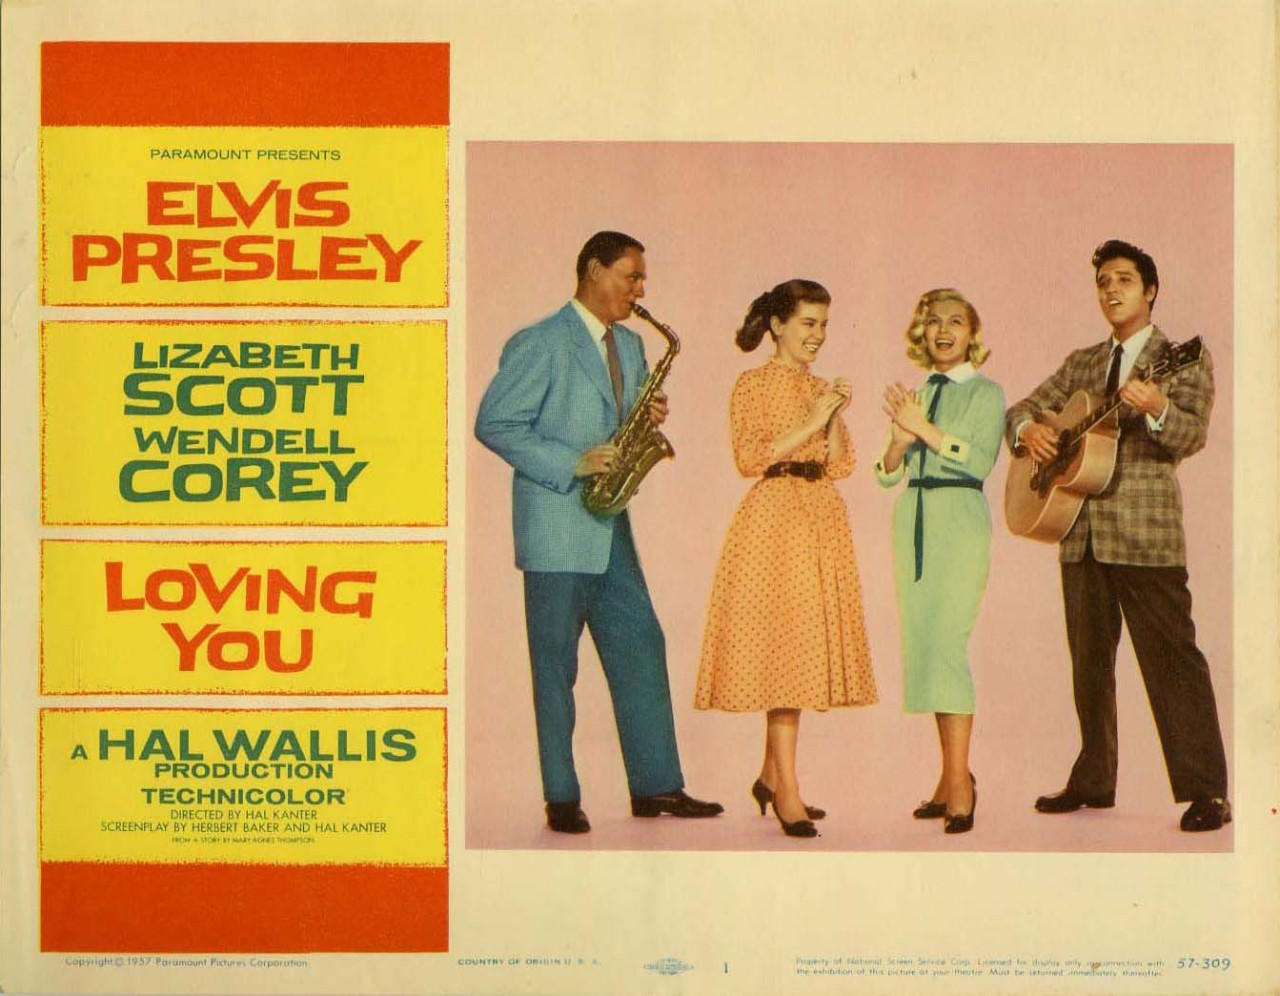 Loving You, US lobby card #1. 1957